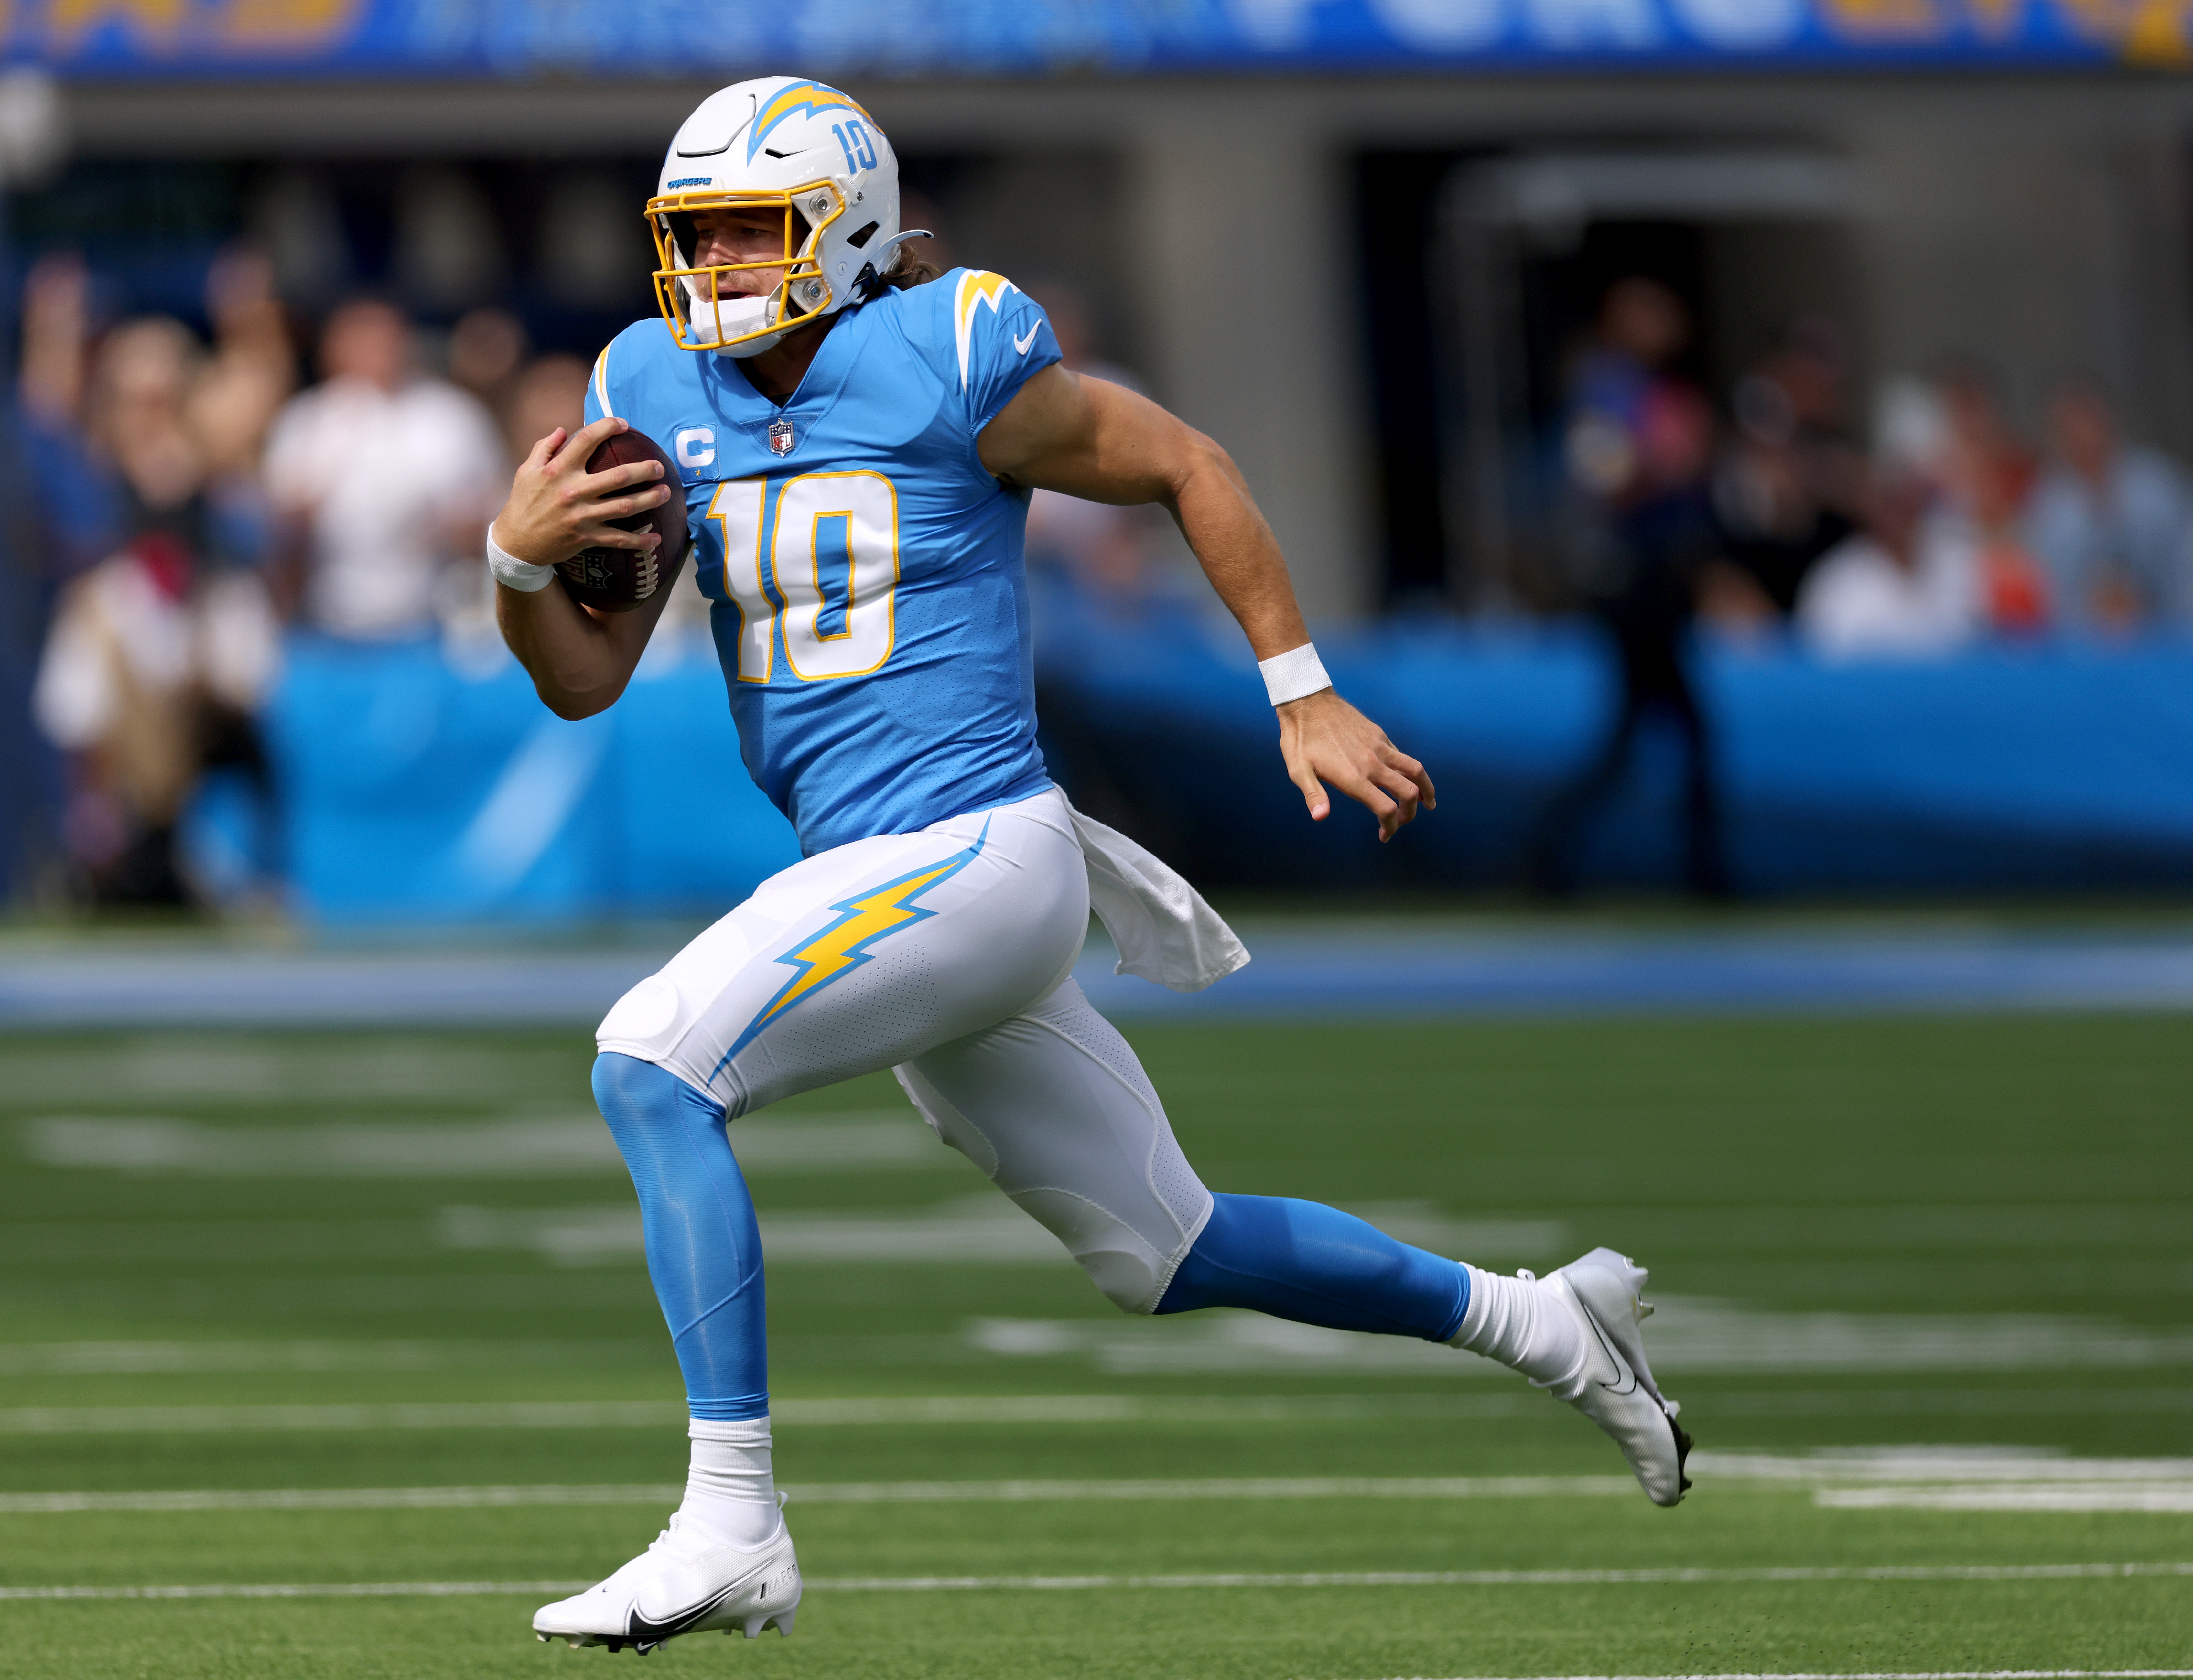 Justin Herbert #10 of the Los Angeles Chargers runs with the ball during a 47-42 win over the Cleveland Browns at SoFi Stadium on October 10, 2021 in Inglewood, California.